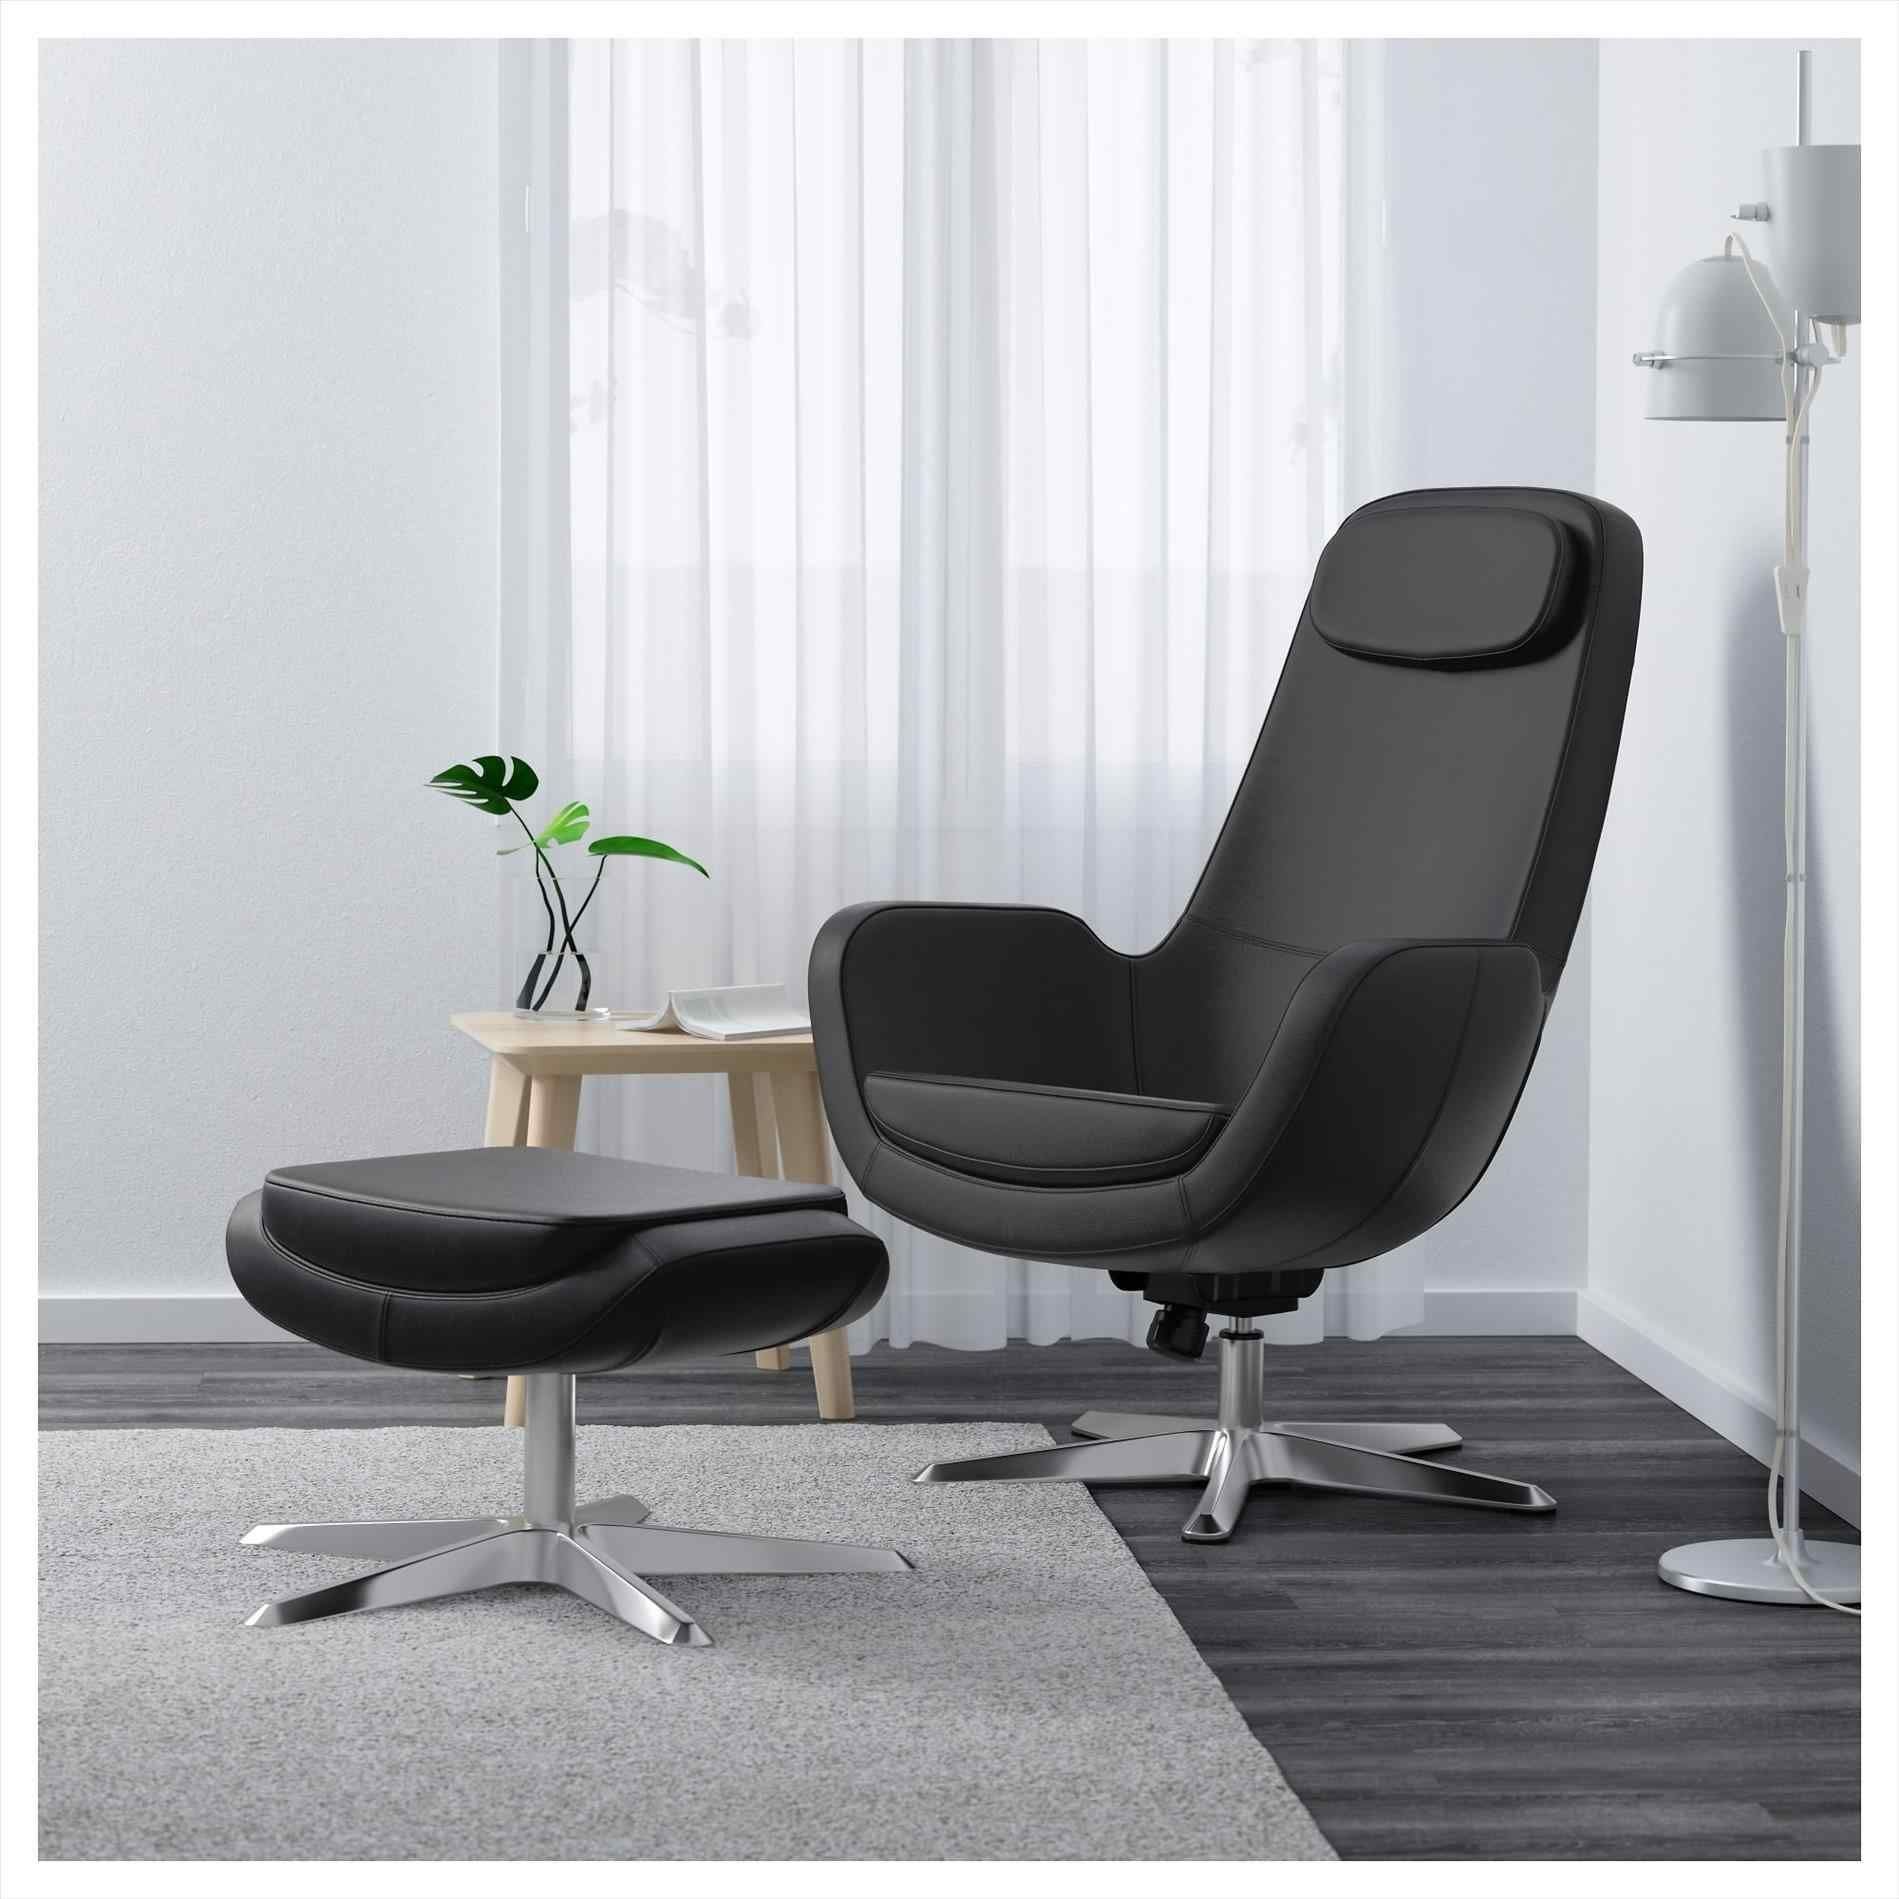 20 Collection Of Most Comfortable Chair Designs For Comfortable Sitting Work Positions Breakpr Comfortable Chair Design Ikea Armchair Chair Design